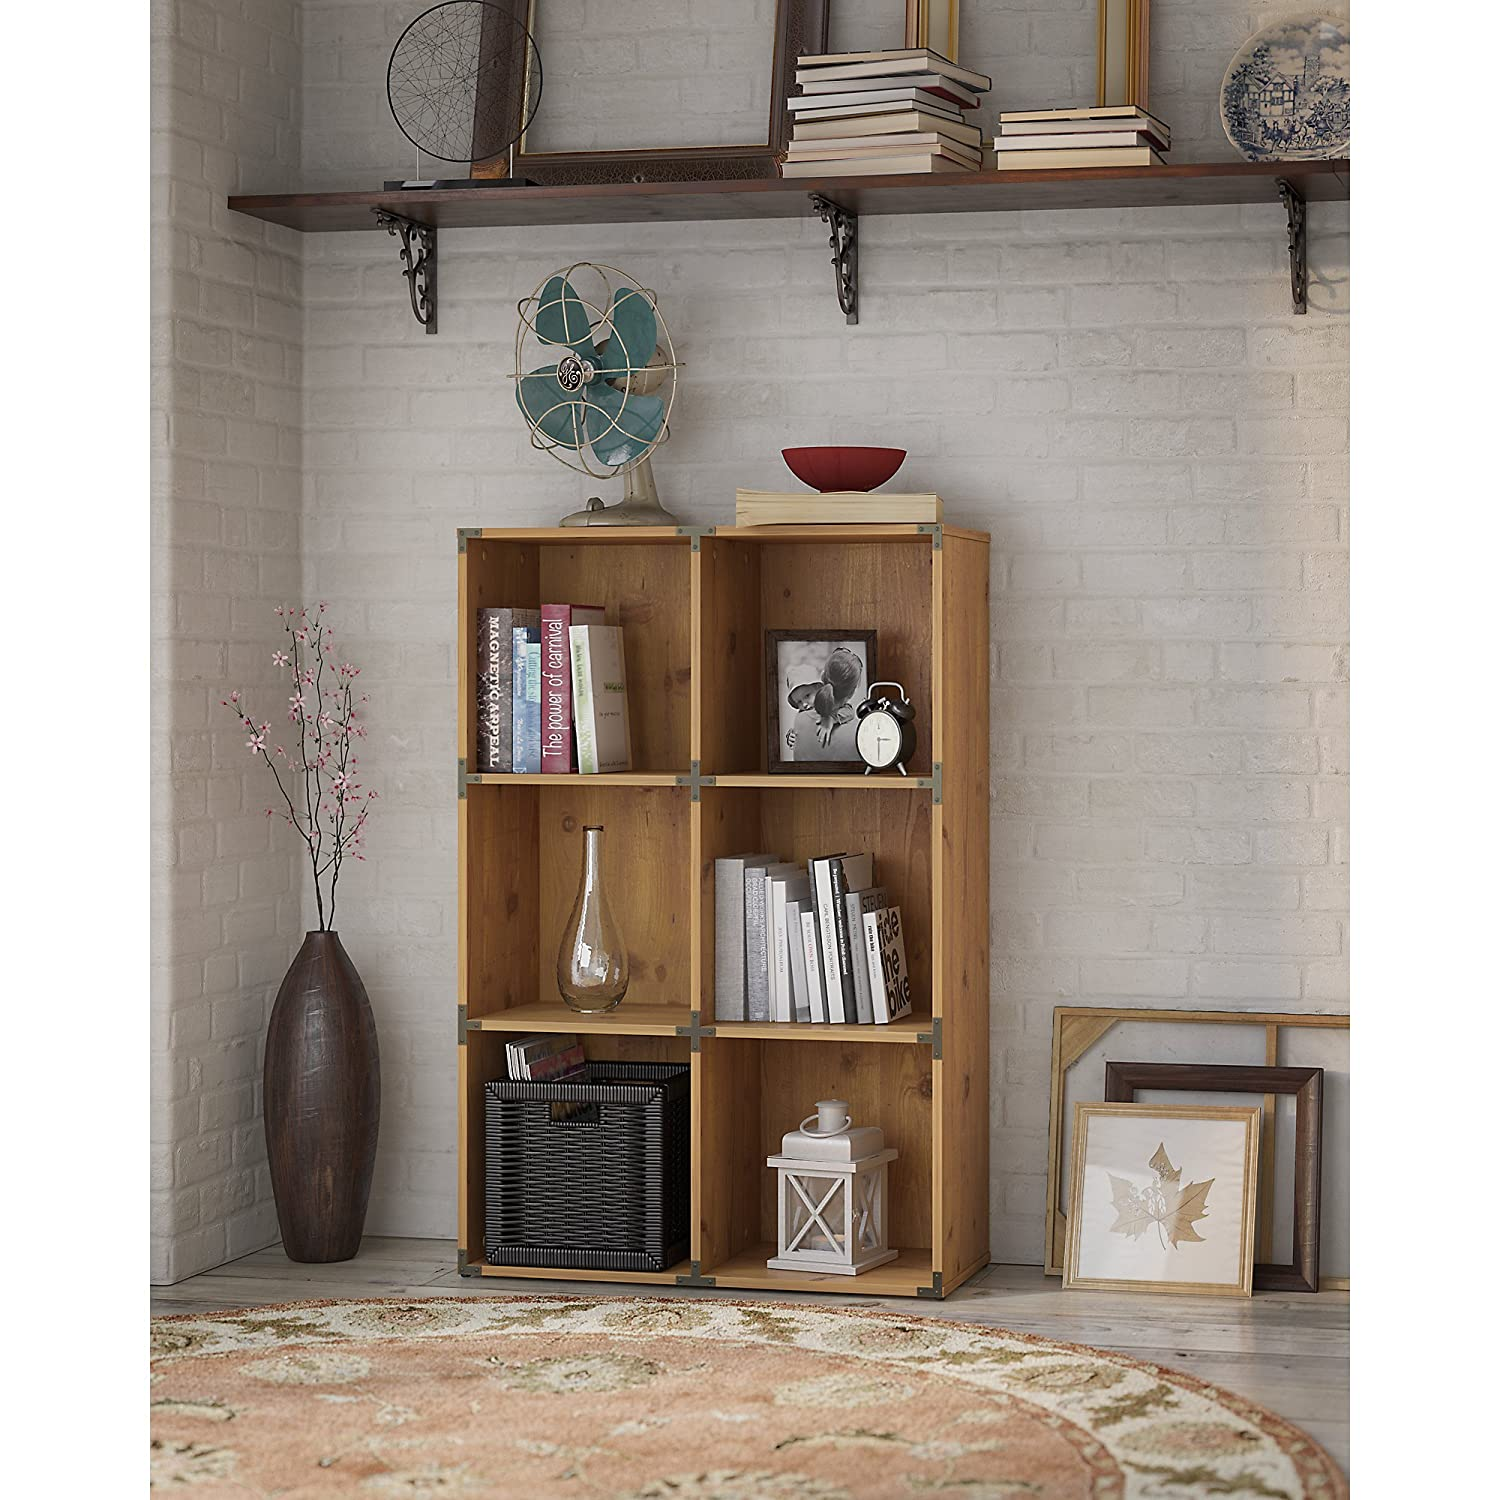 kathy ireland Home by Bush Furniture Ironworks 6 Cube Bookcase in Vintage Golden Pine